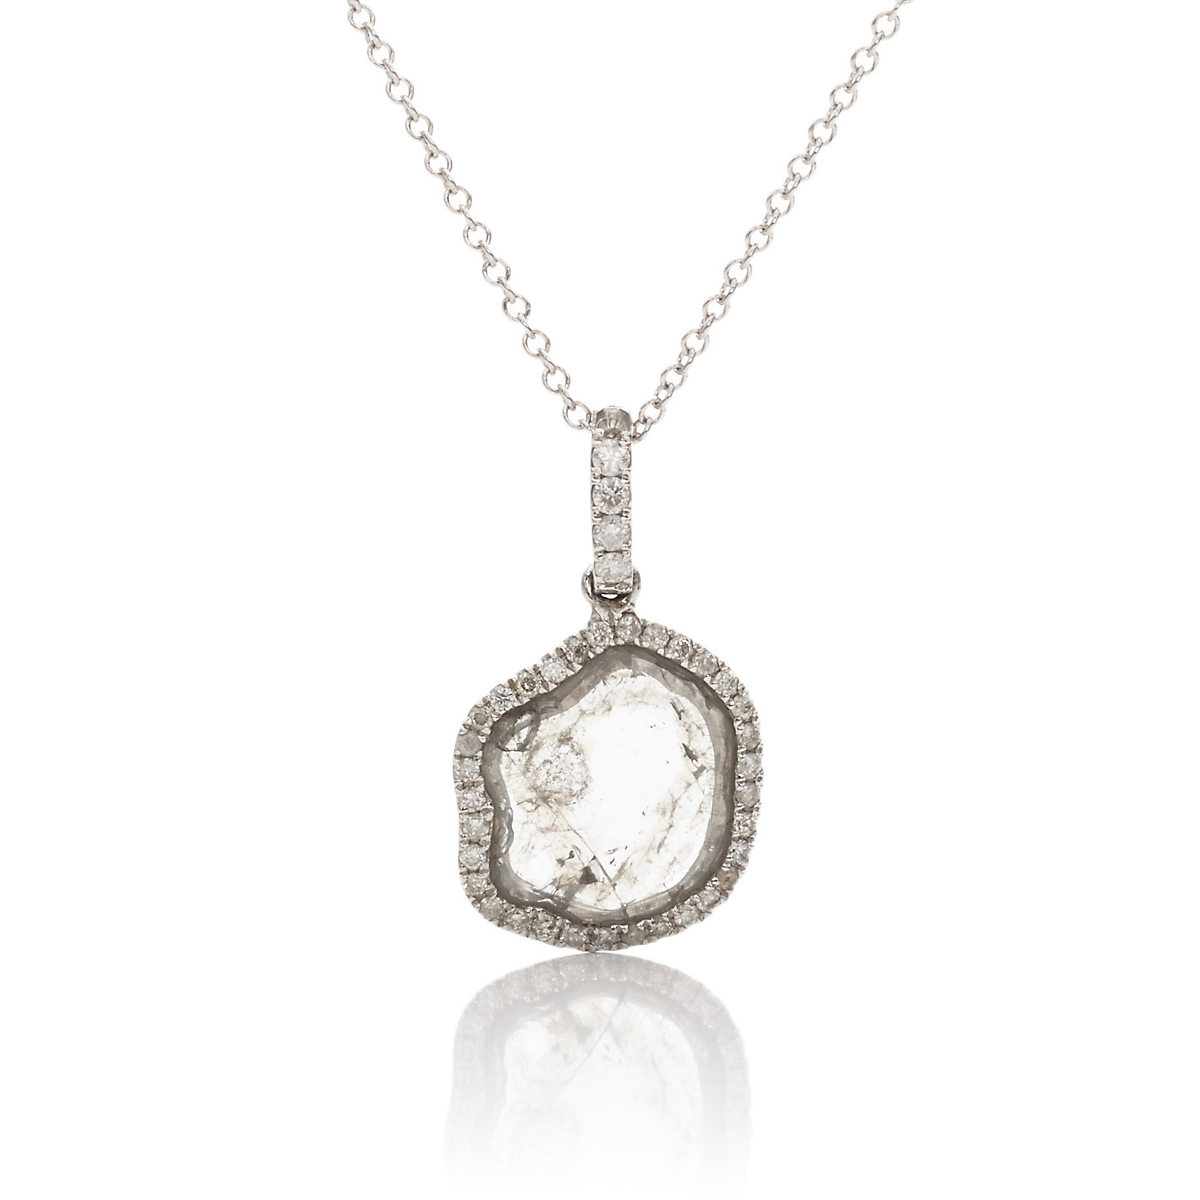 Ashley Morgan White Gold & Diamond Slice Pendant